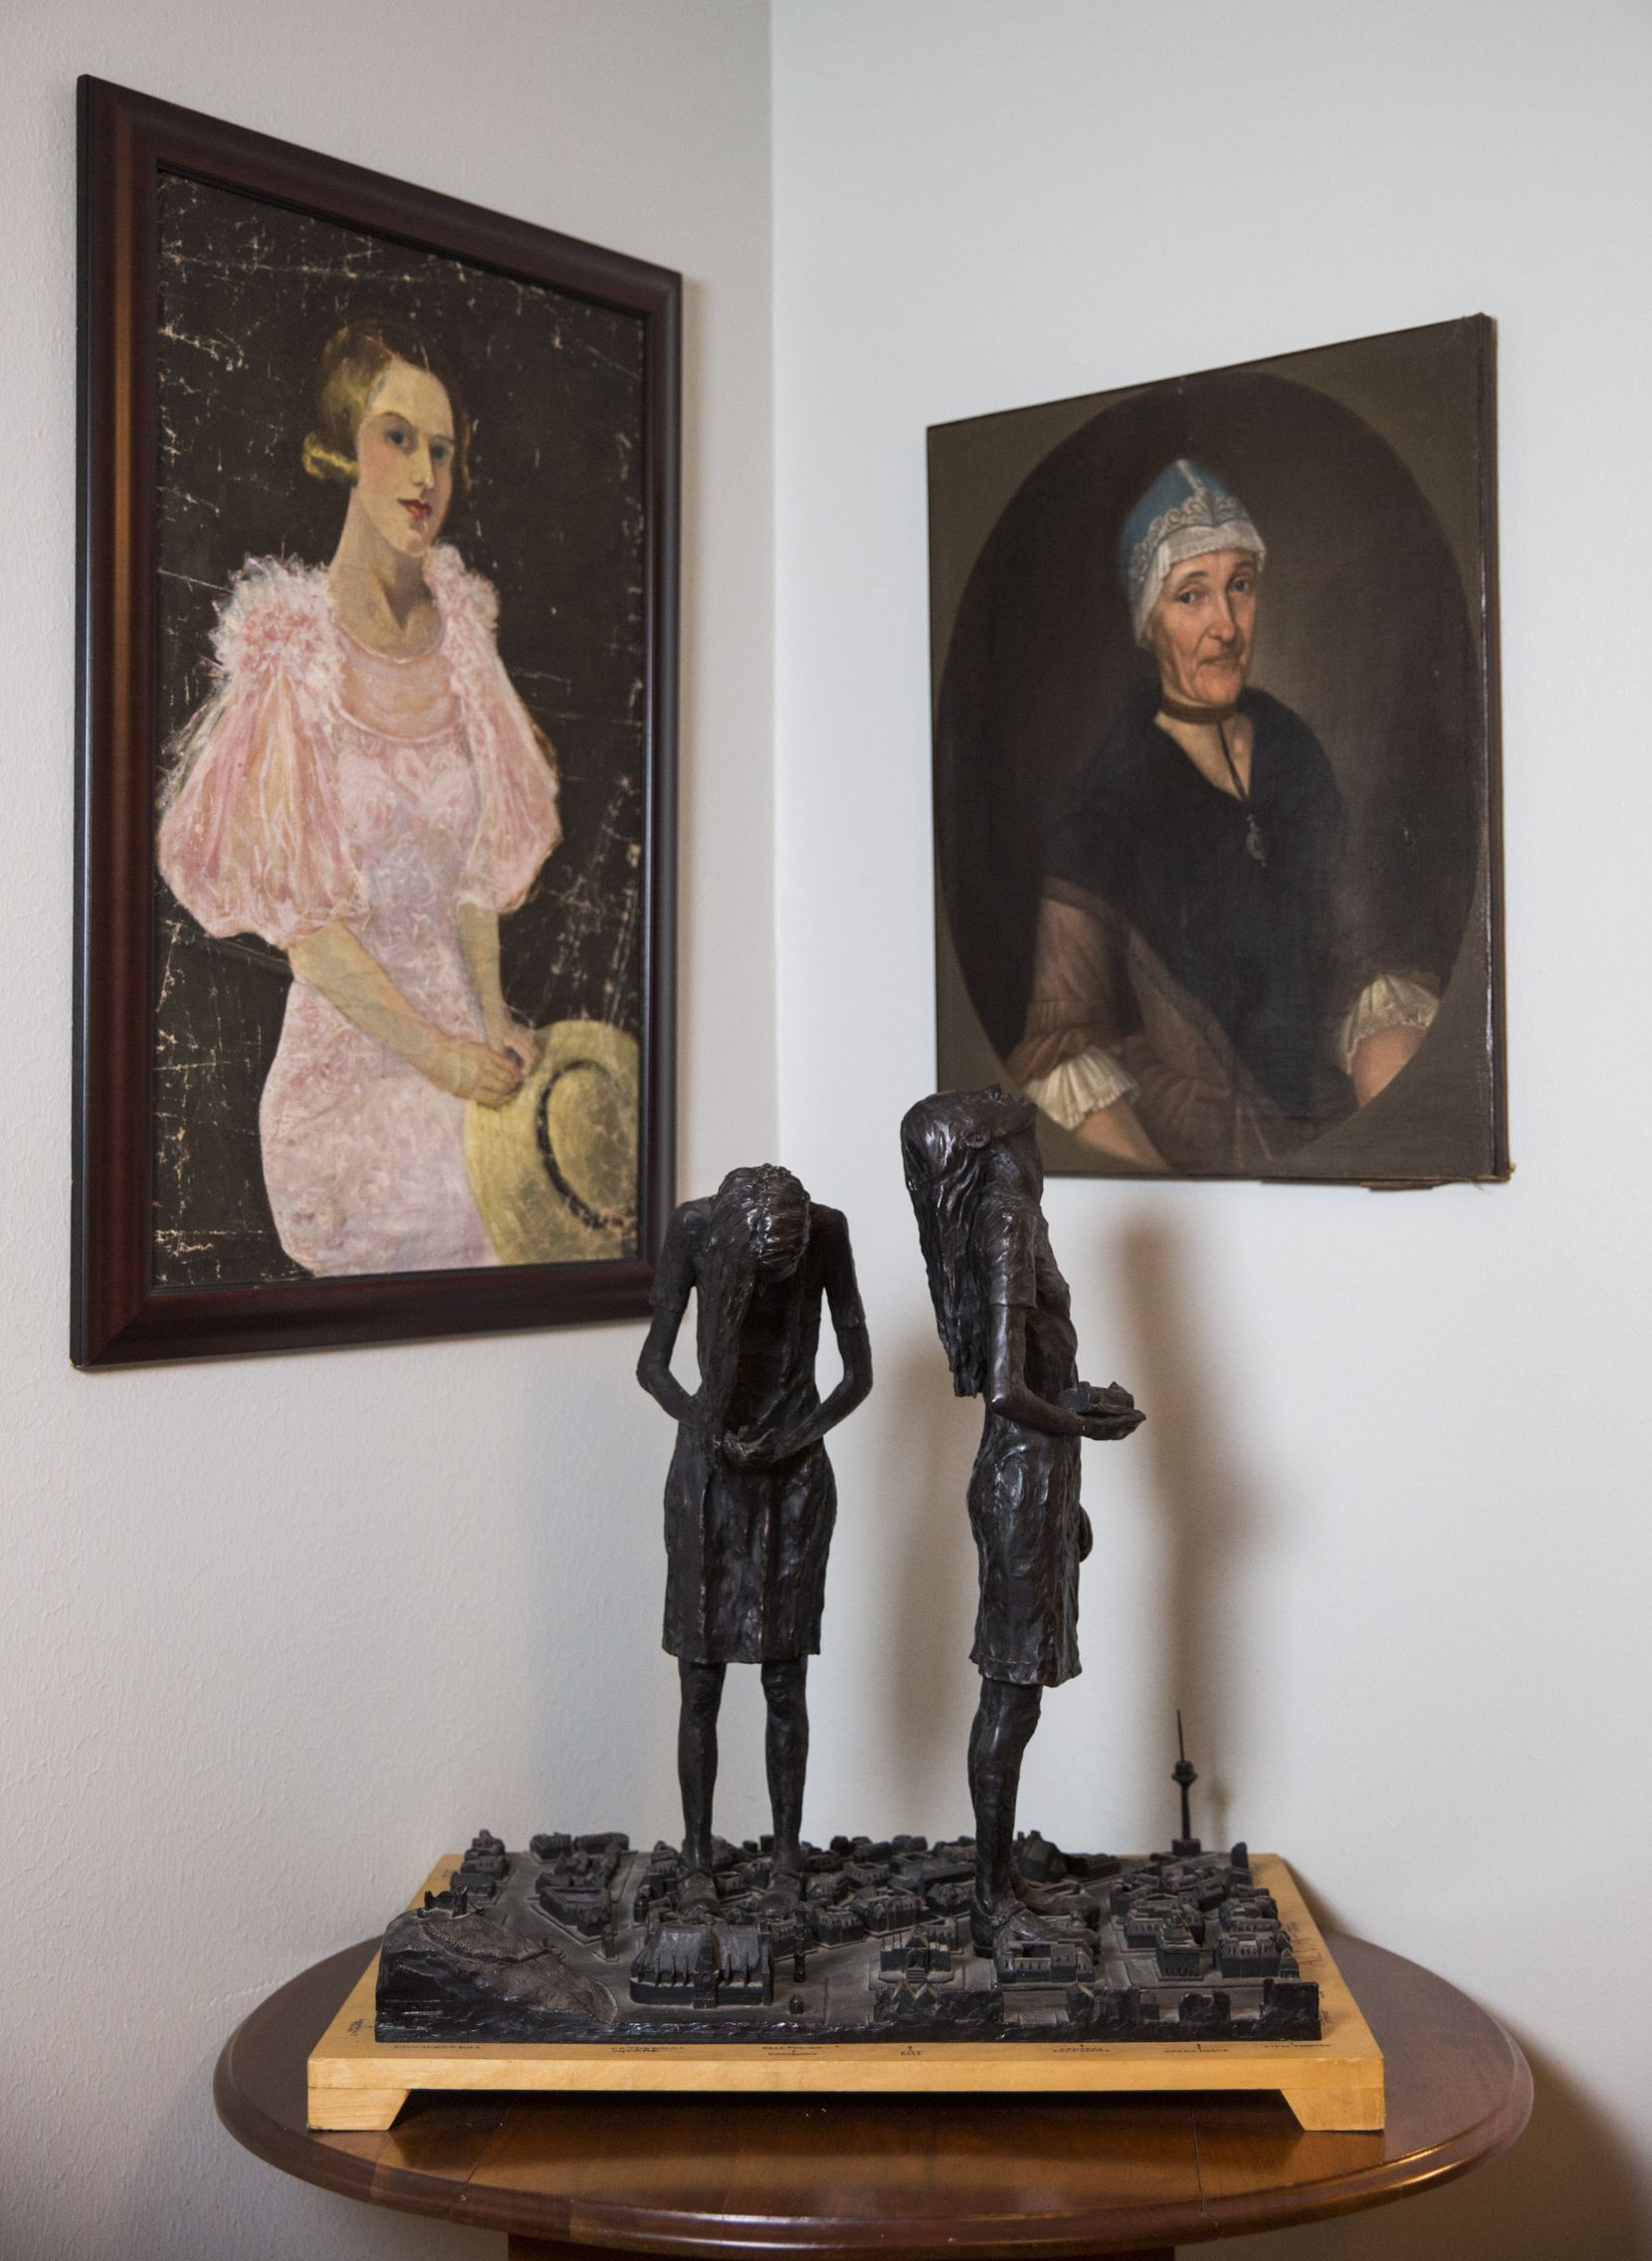 Painted portraits and a sculpture are displayed in the Austin home of authors Elizabeth McCracken and Edward Carey.